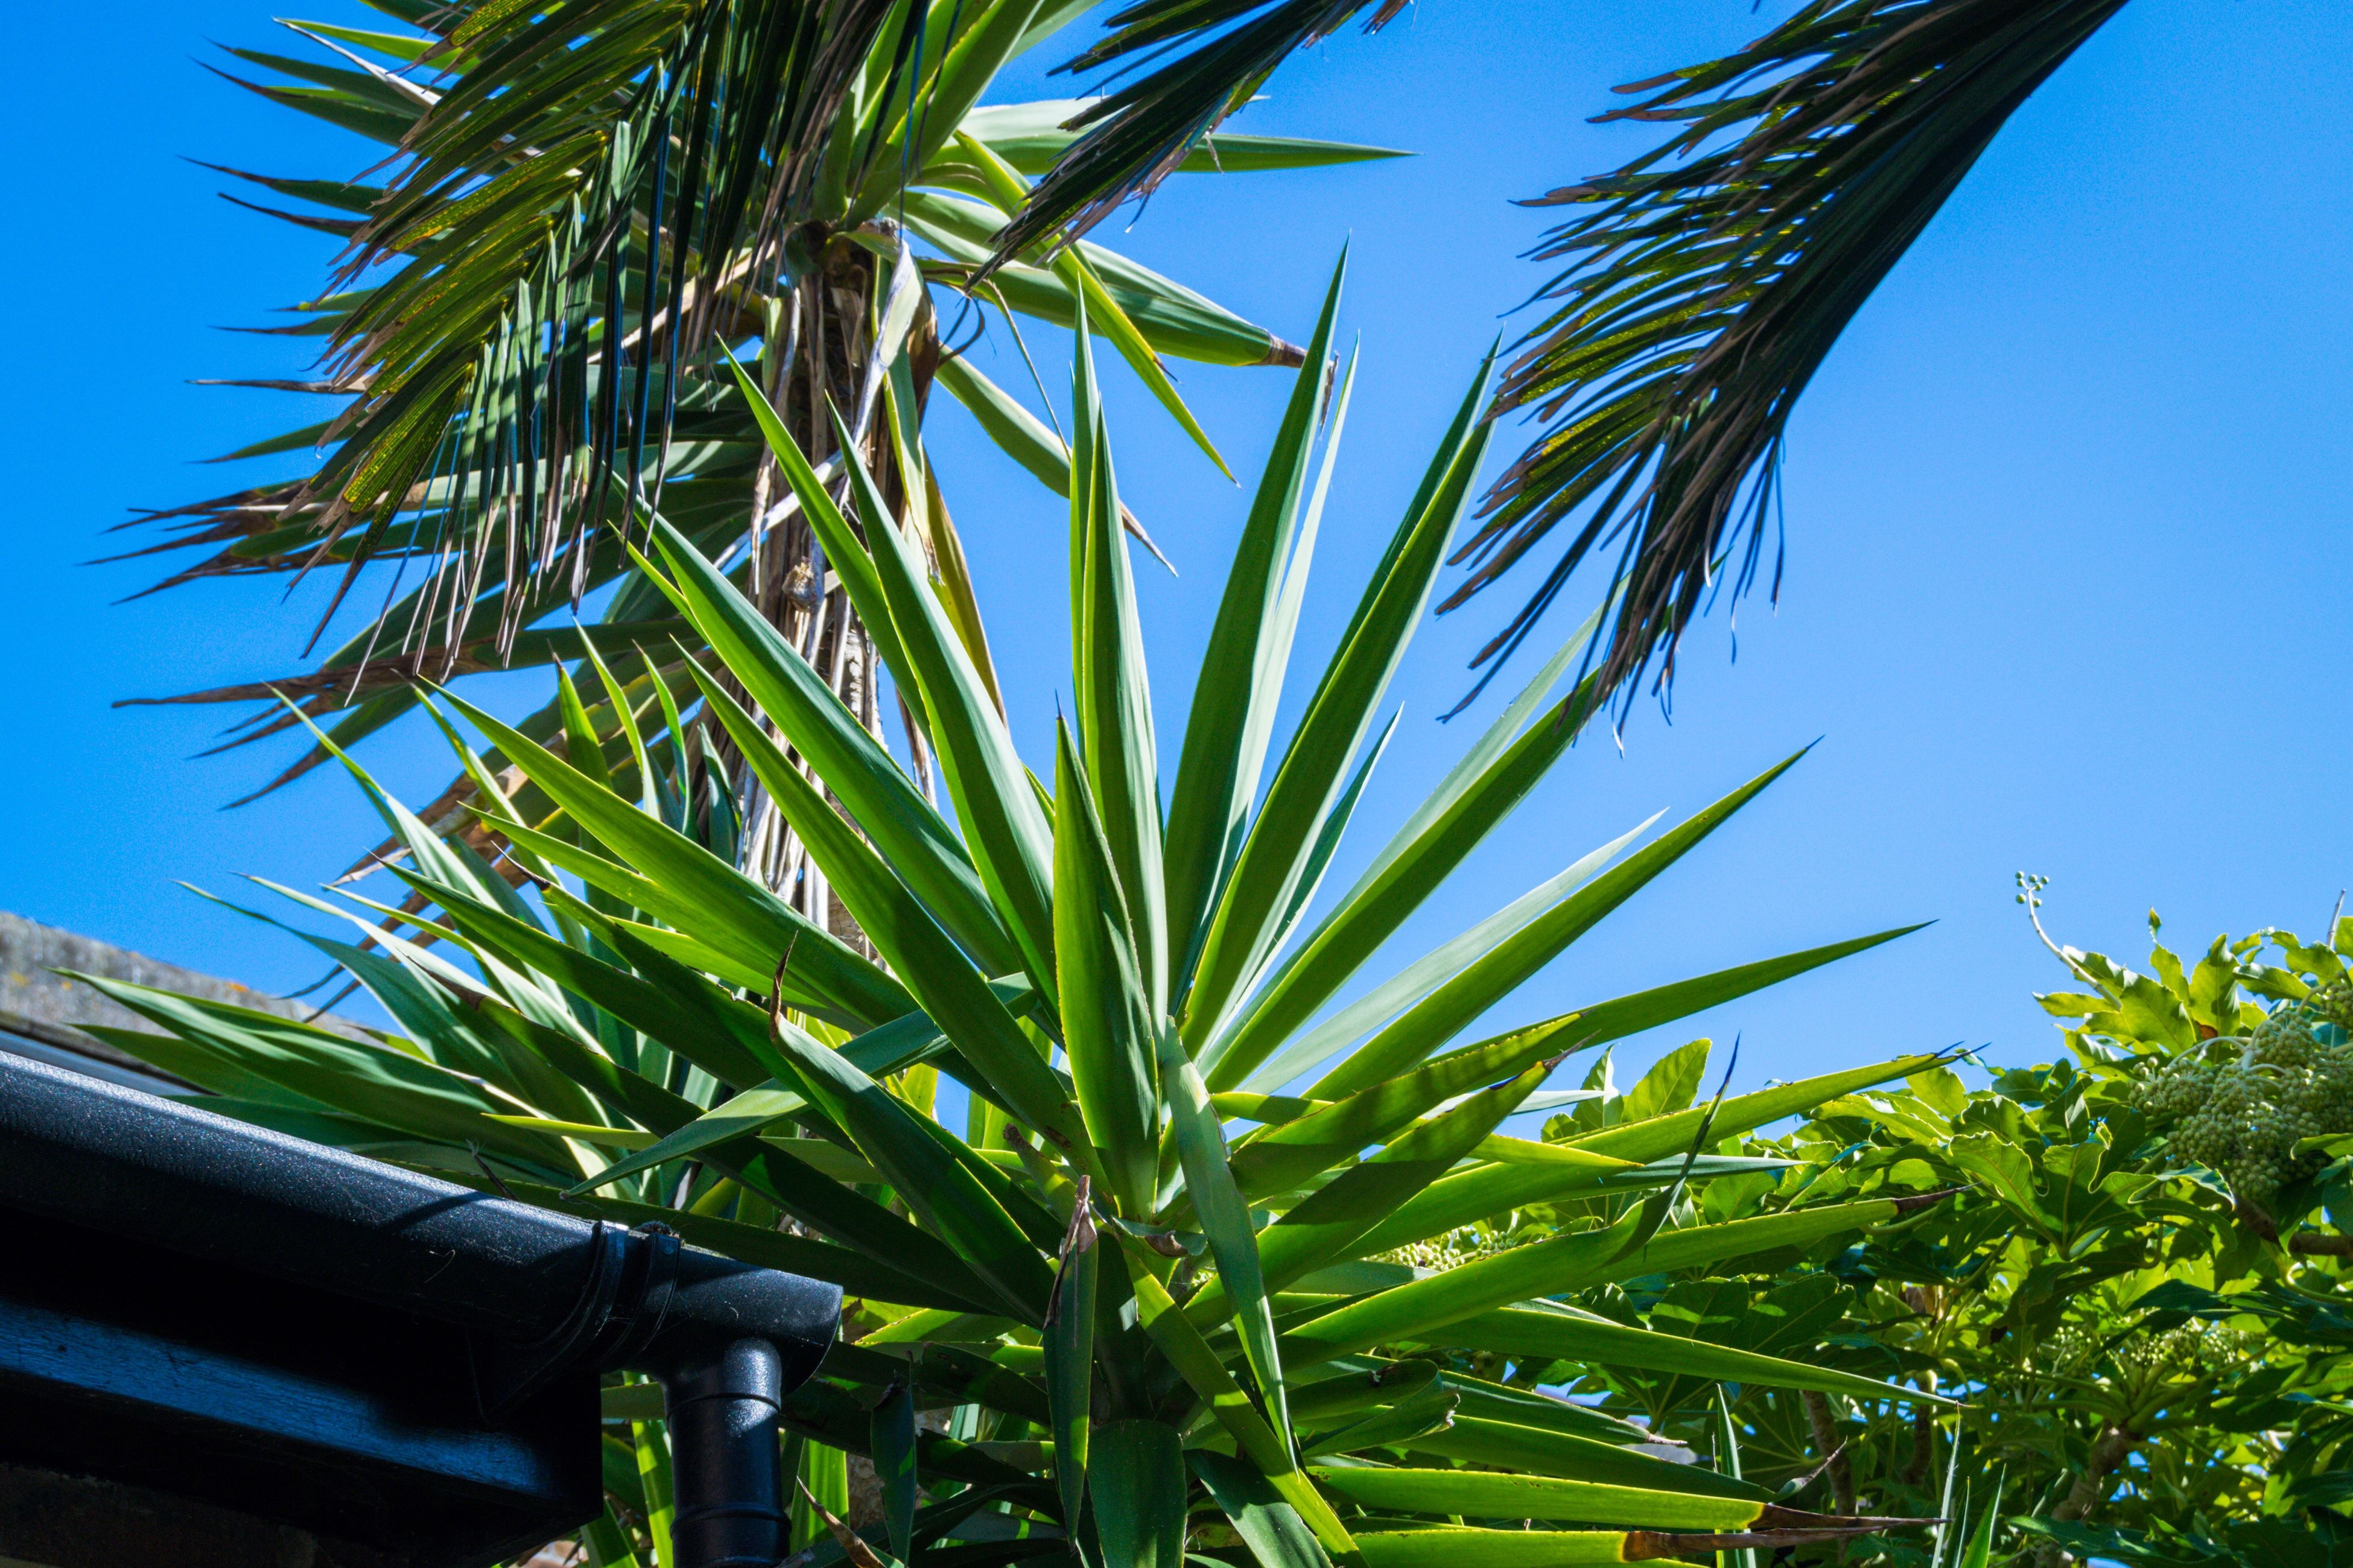 growth, palm tree, tree, low angle view, nature, green color, no people, sky, clear sky, day, outdoors, beauty in nature, close-up, palm frond